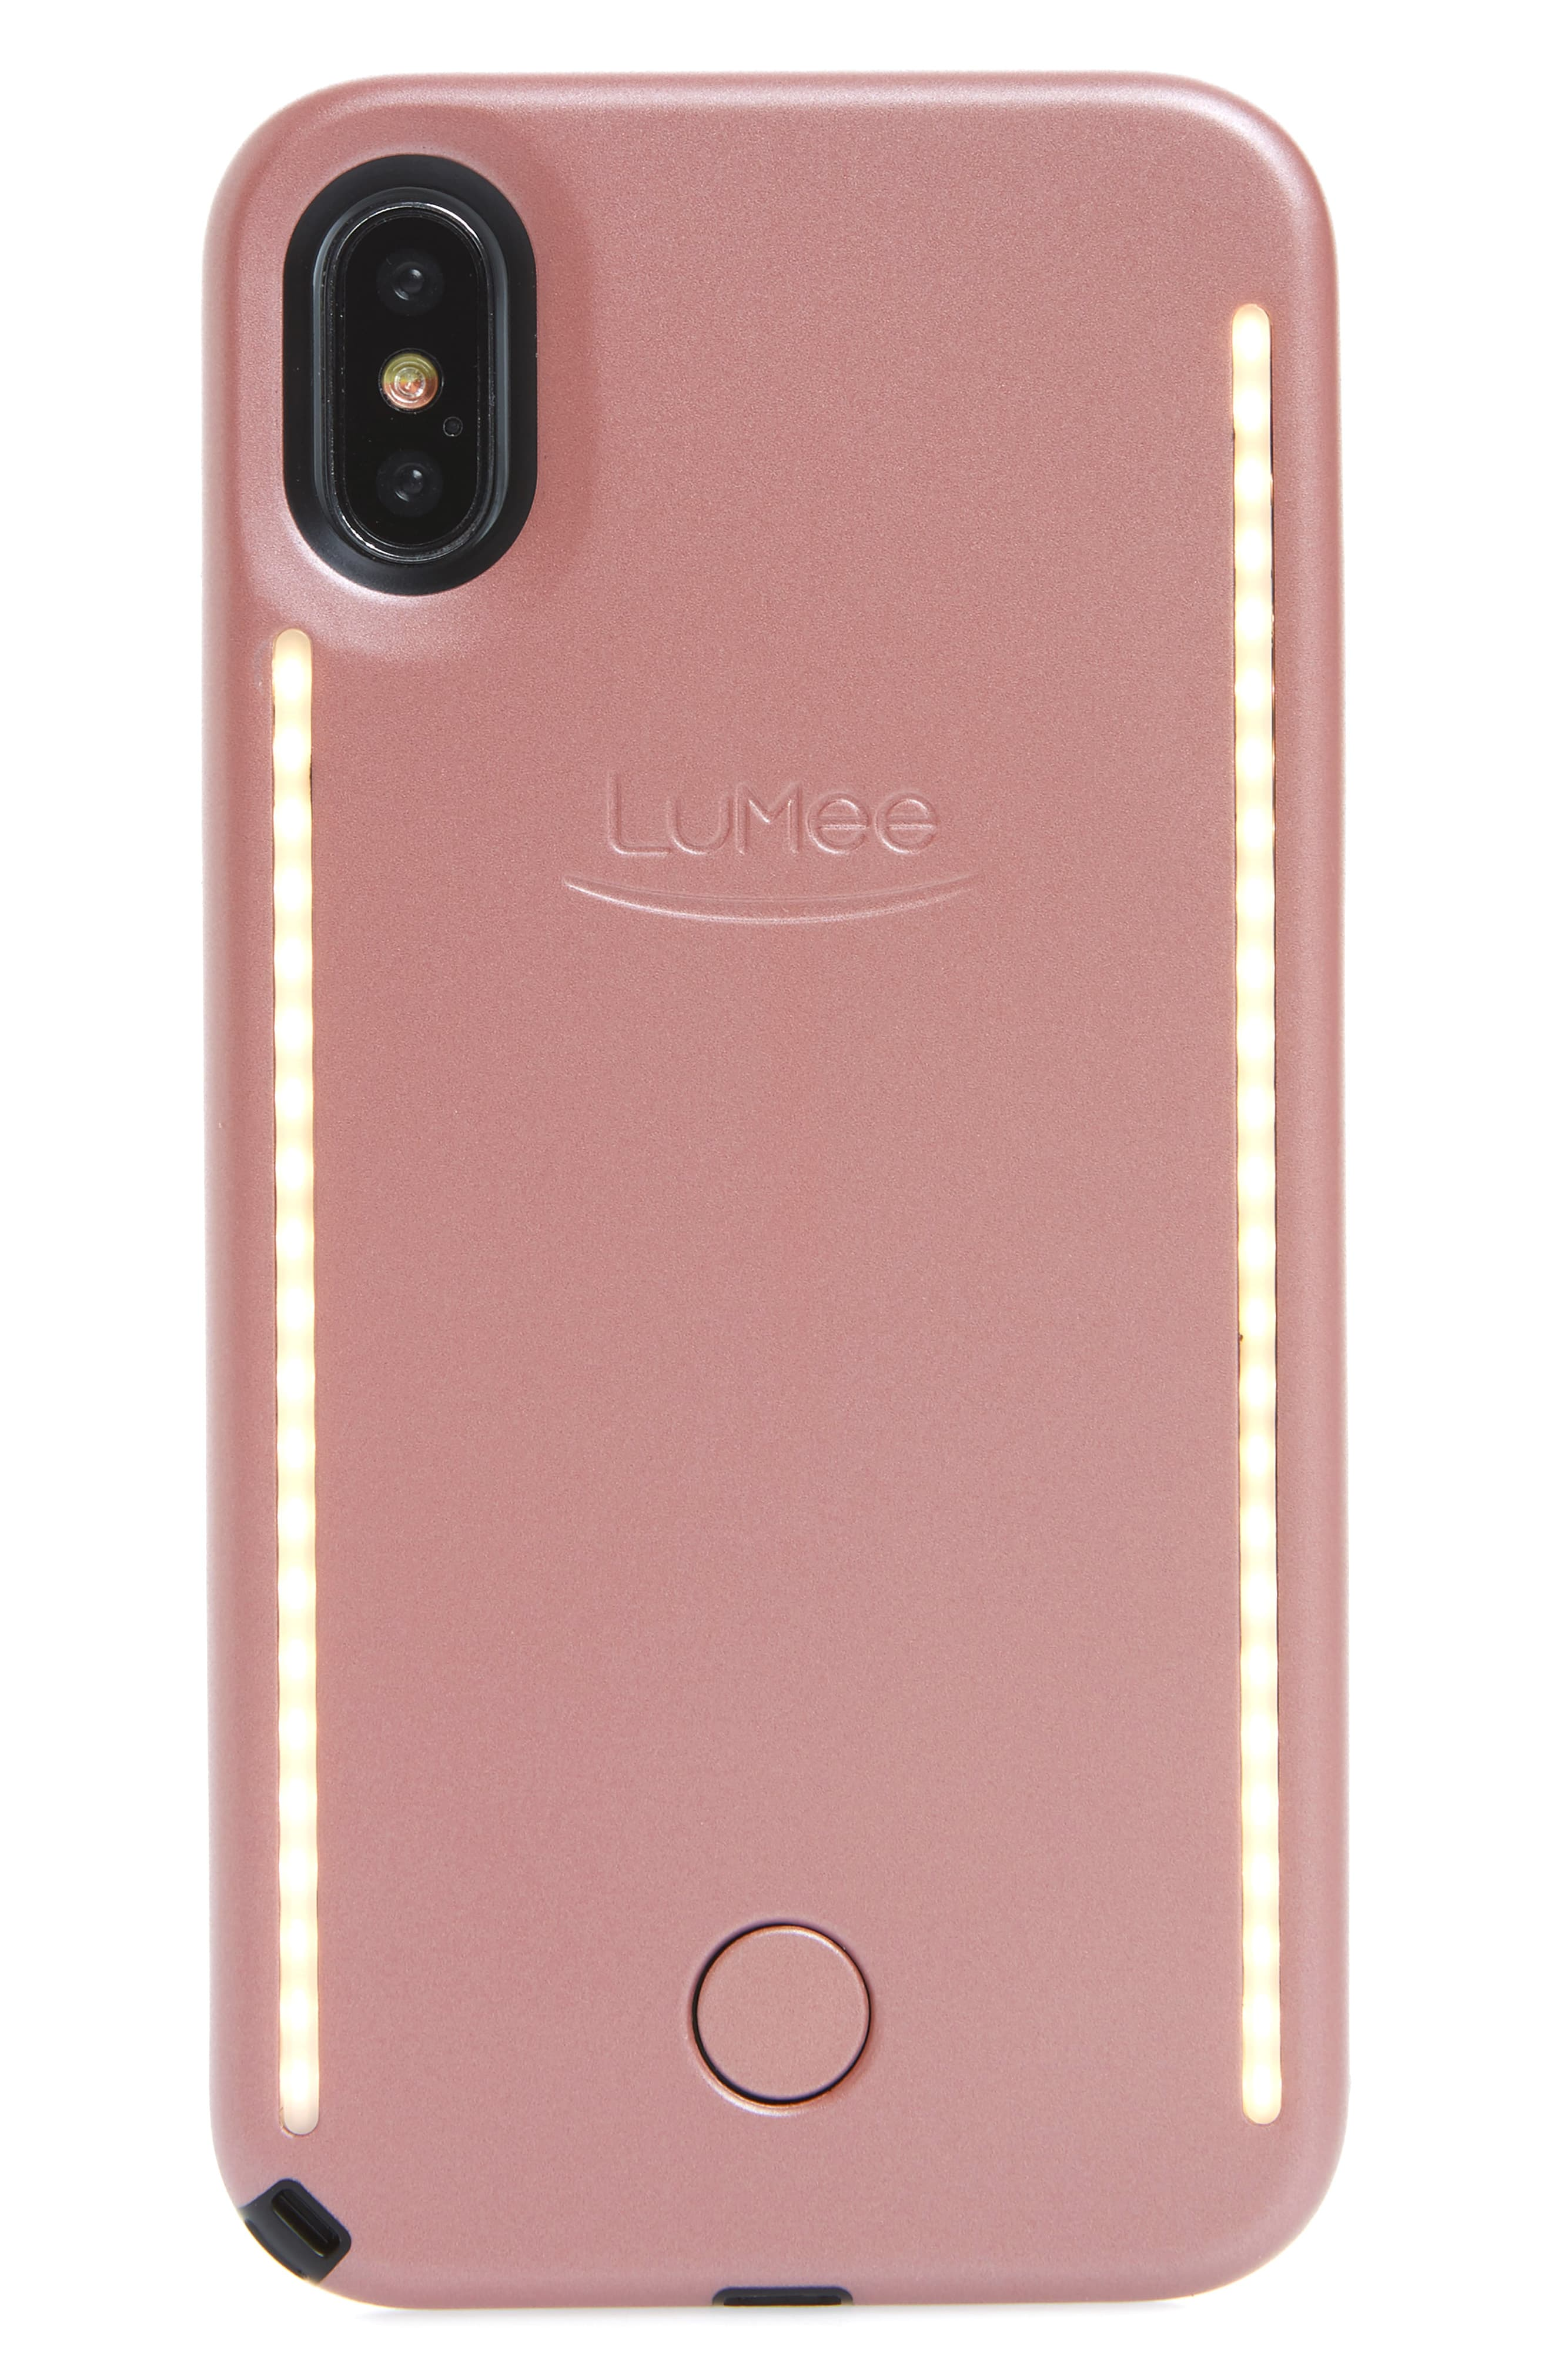 finest selection 56483 e15f5 Lumee Led Lighted Iphone X/xs Case - Pink in 2019 | Products ...